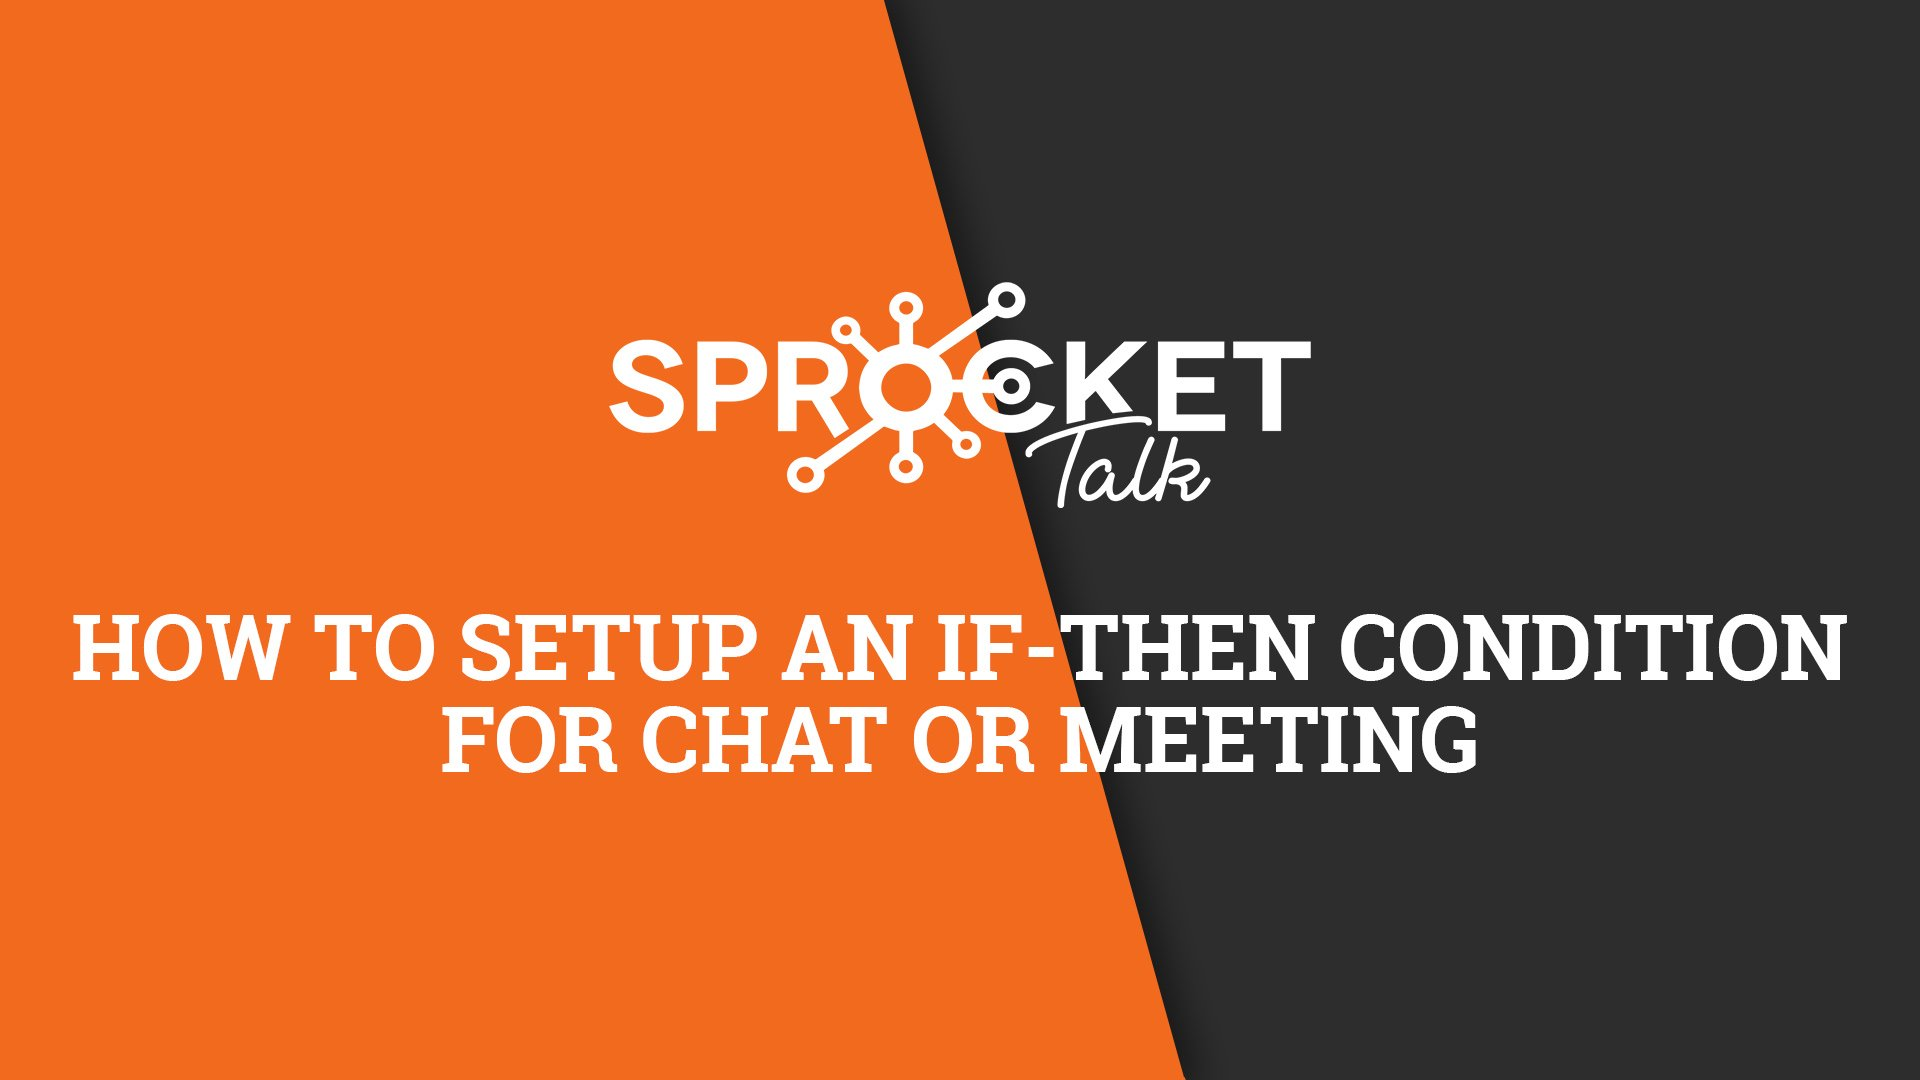 How to Setup an If-then Condition for Chat or Meeting